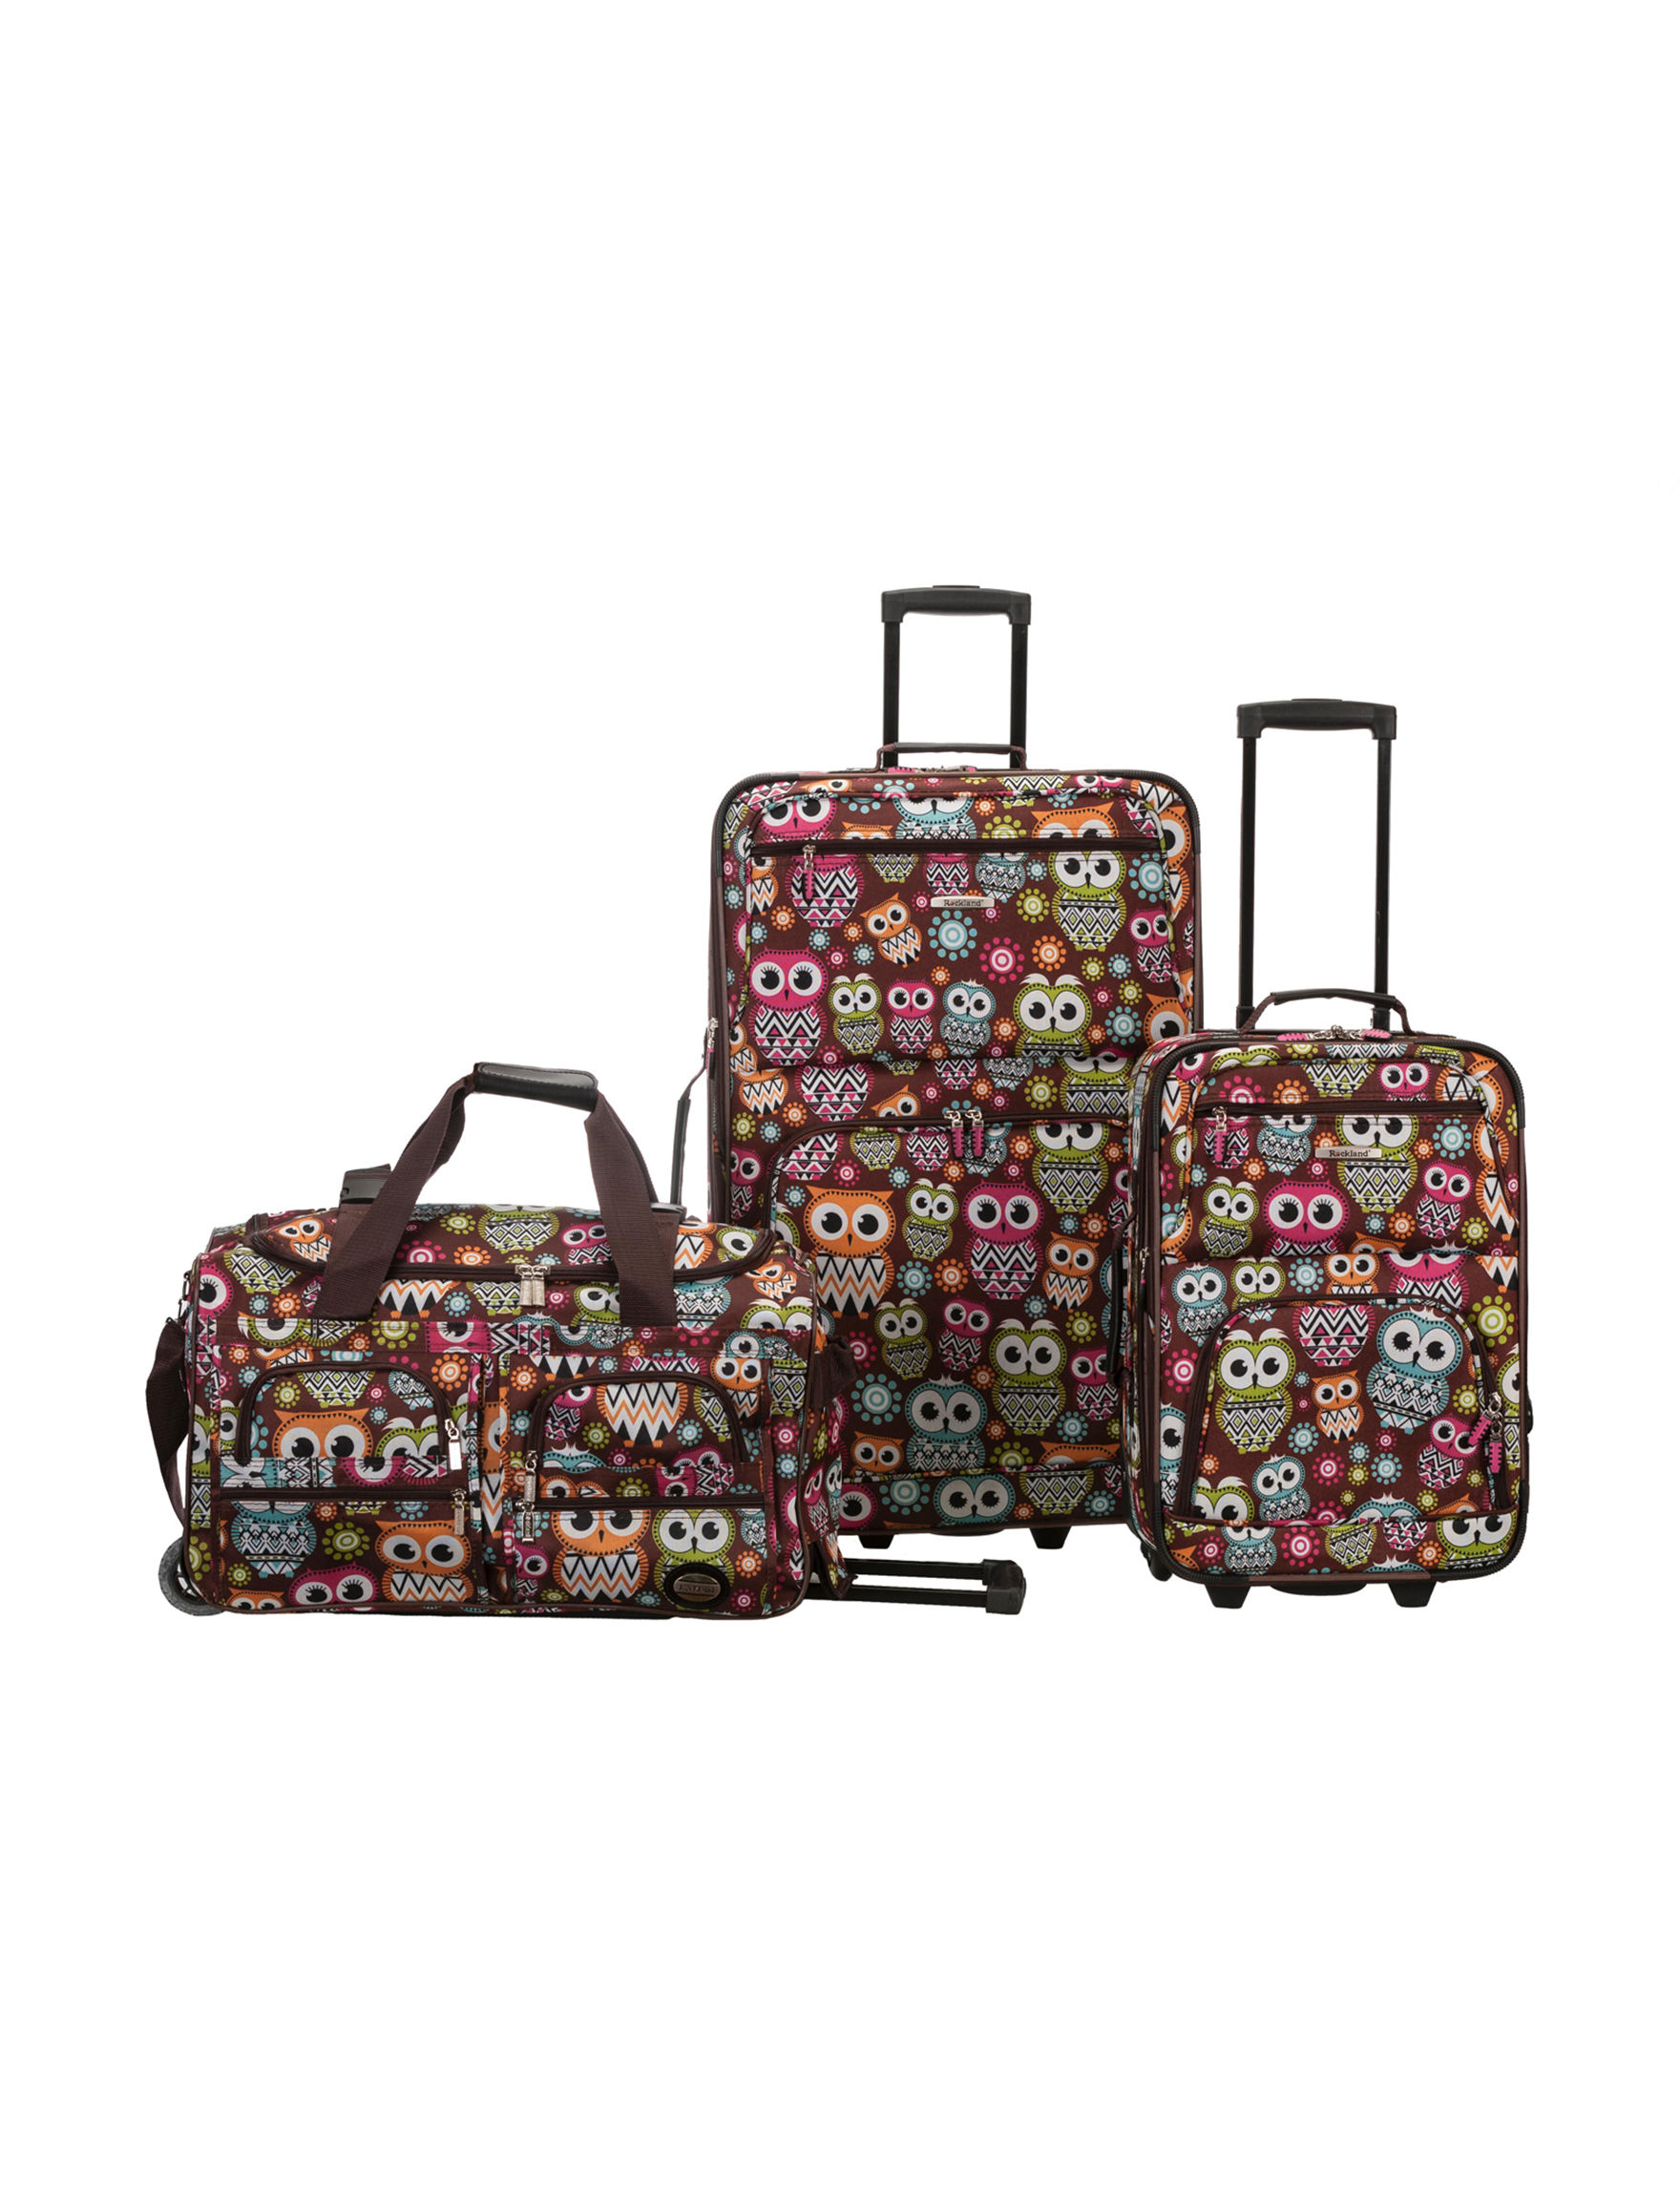 Rockland Brown / Multi Luggage Sets